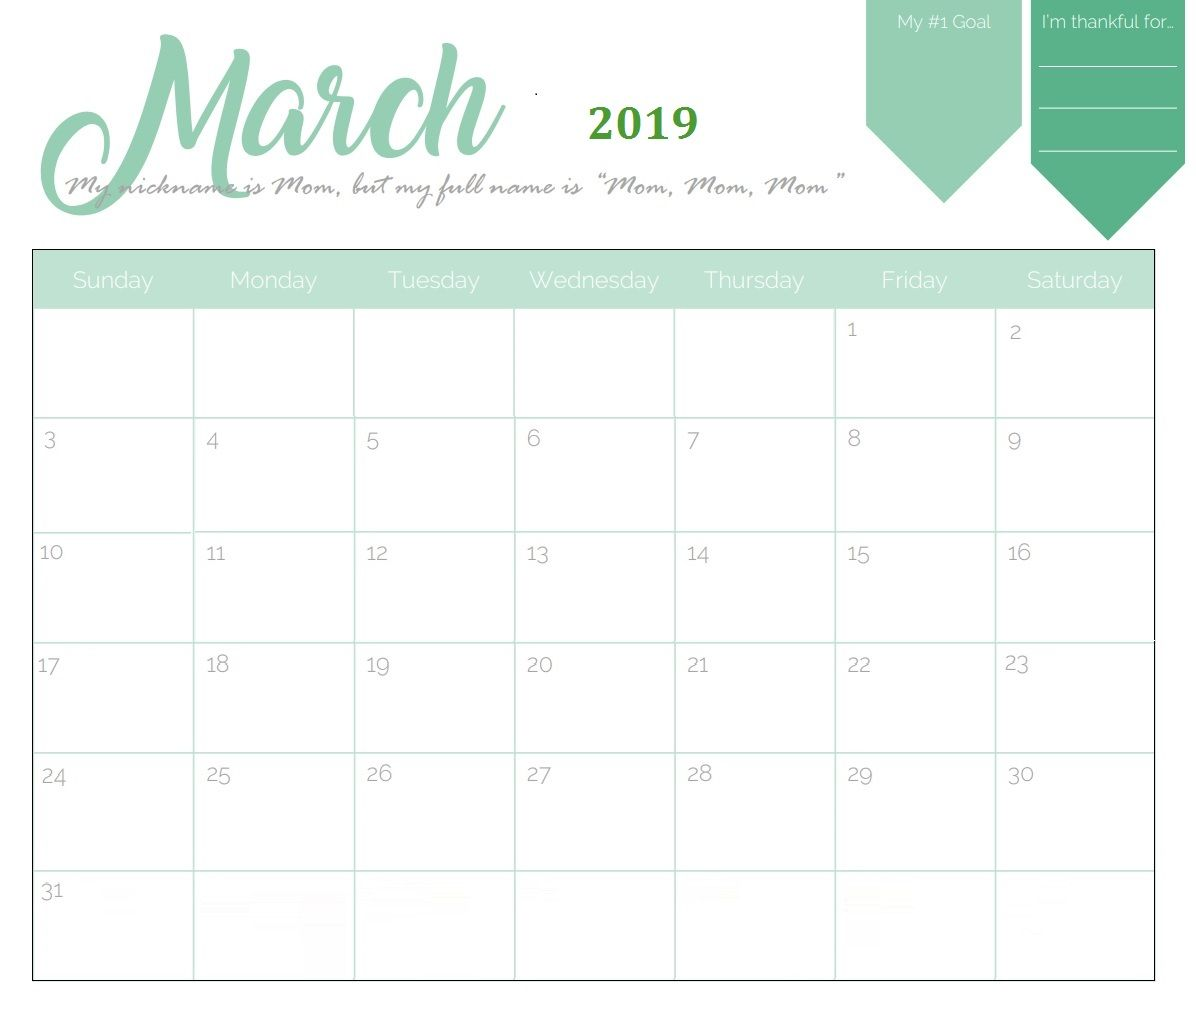 picture about Printable March Calendar Pdf called March 2019 Printable Calendar PDF - No cost August 2019